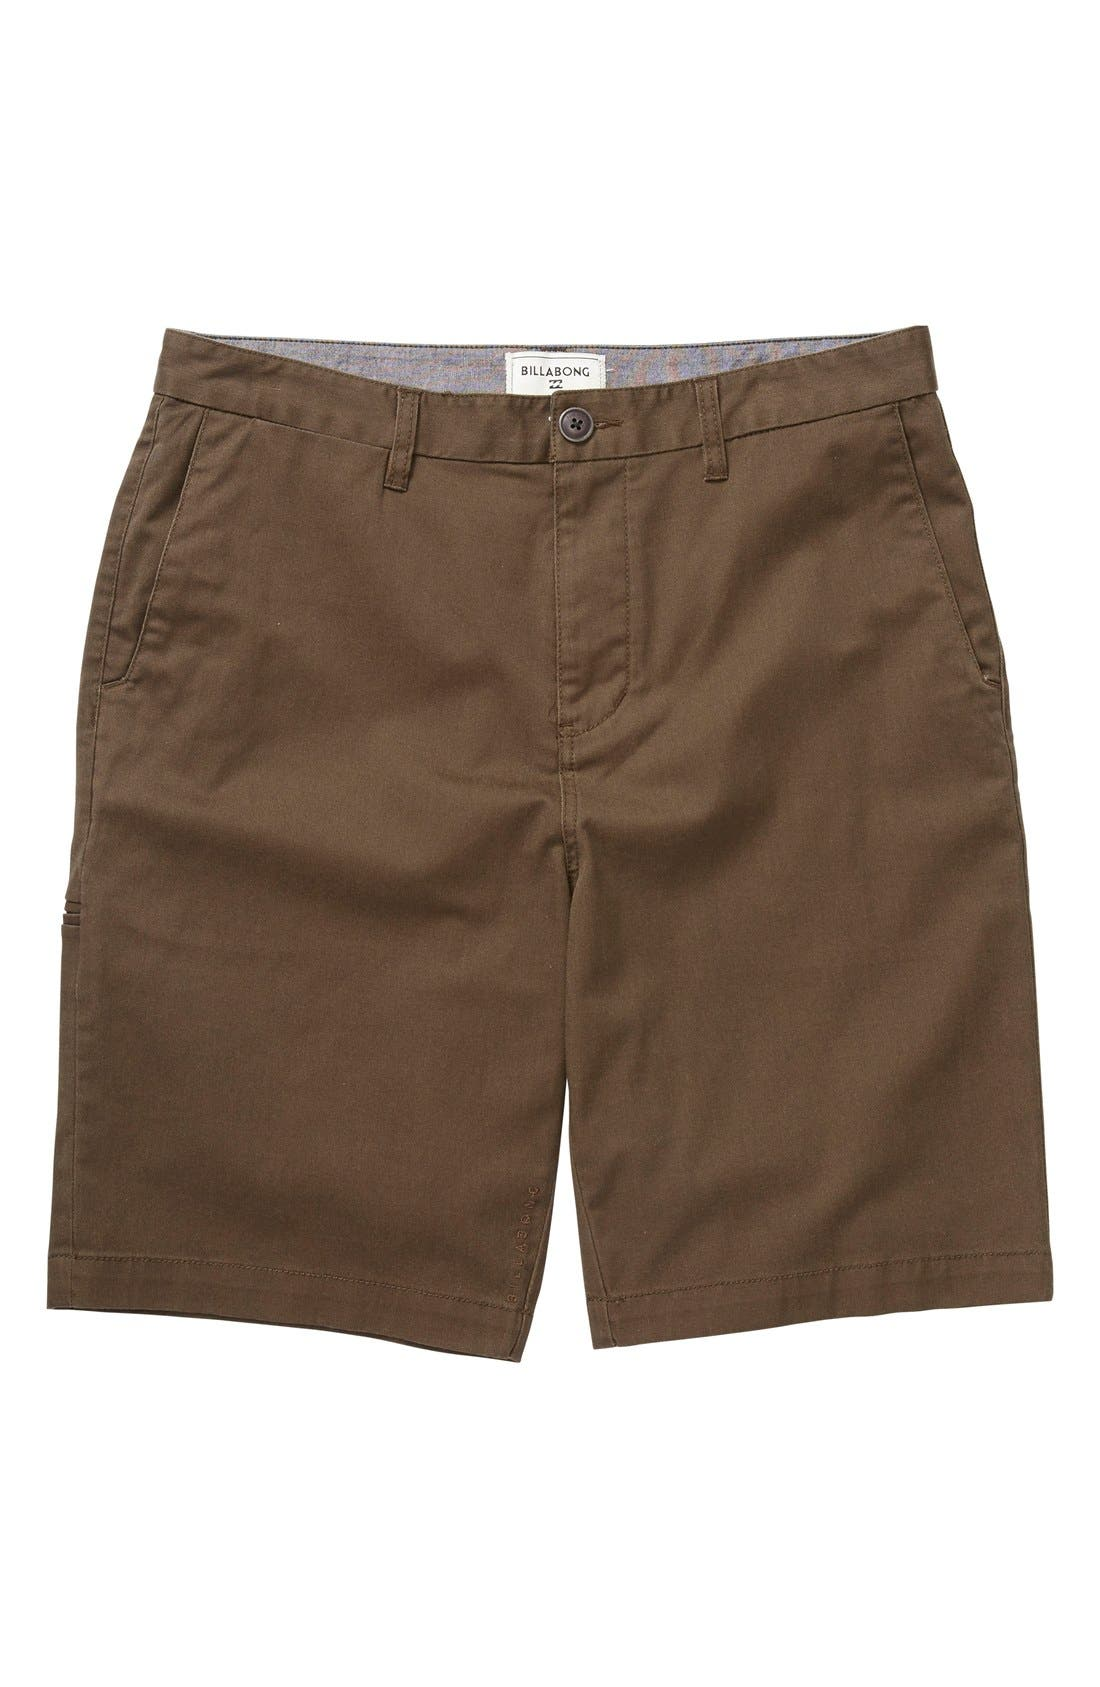 'Carter' Cotton Twill Shorts,                         Main,                         color, Earth